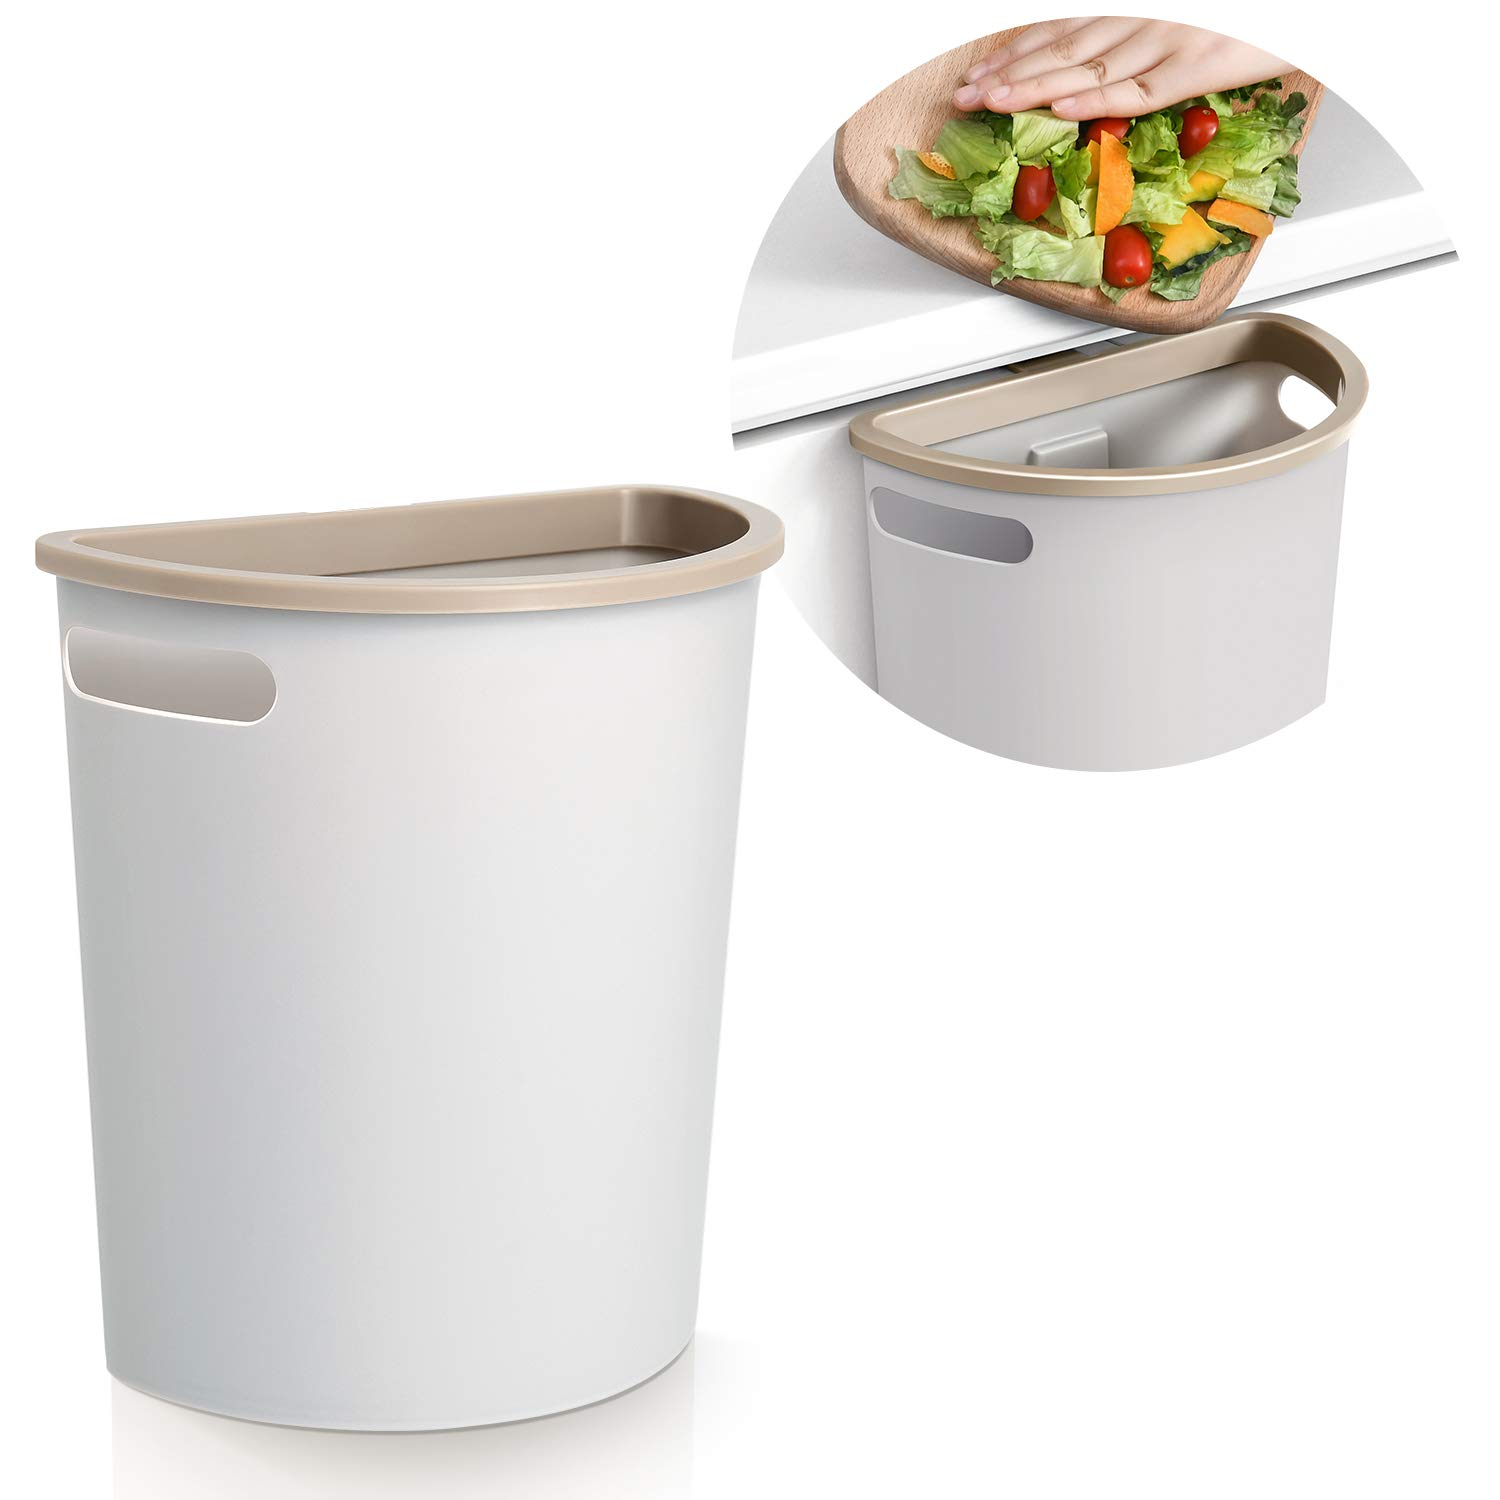 Amazon Com Subekyu Small Trash Can Hanging Waste Bin Under Kitchen Sink Plastic Wastebasket Over Cabinet Door With Top Ring To Fix Garbage Bag Home Kitchen